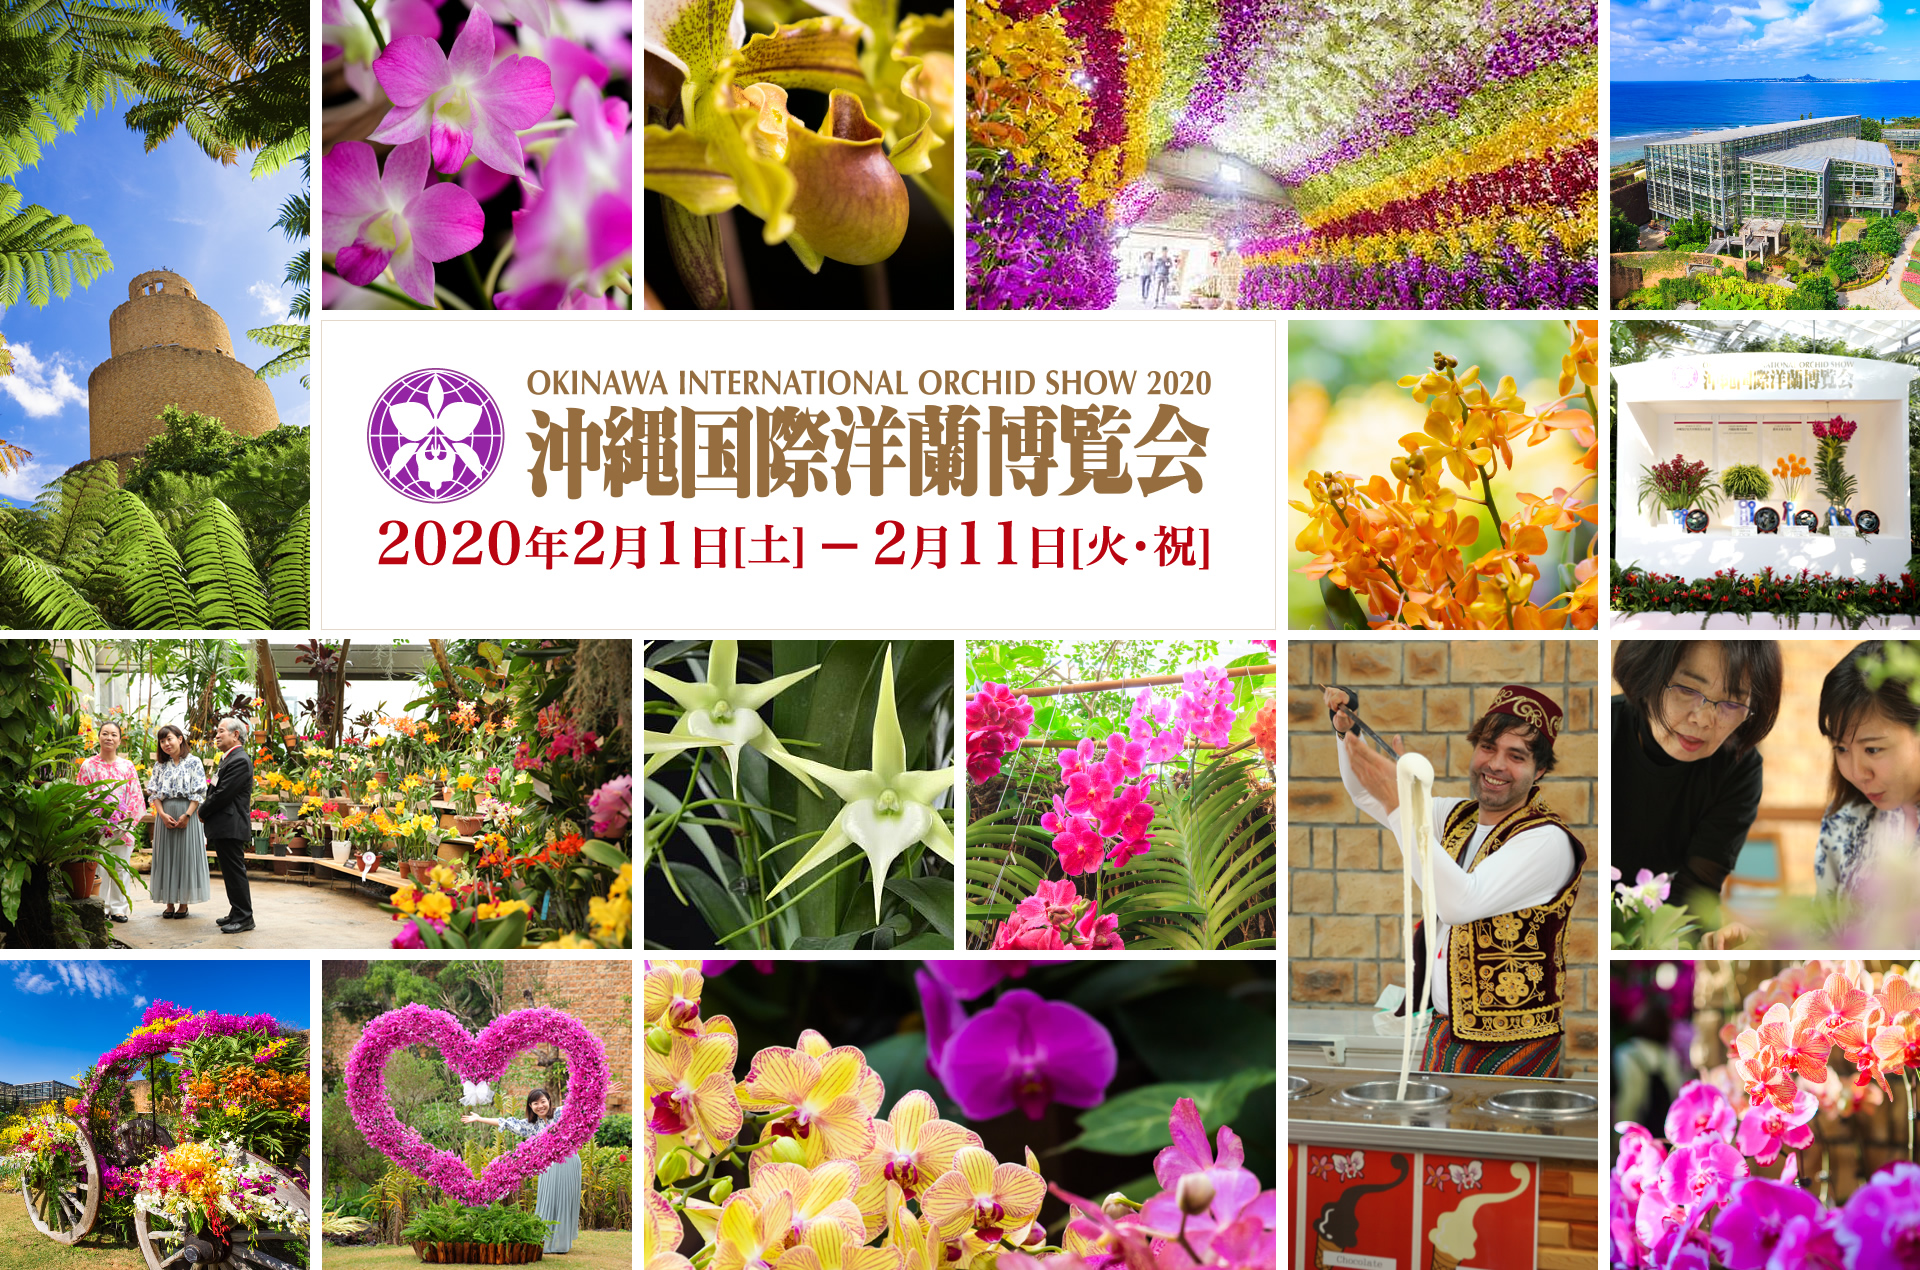 Big event of international scale that orchid on approximately 20,000 points of Monday (holiday) is displayed for okinawakokusaiyoranhaku*kai from Saturday, February 3, 2018 to February 12. Venue is decorated with orchid of one side, and you can see the world of fantastic flower. Contest ... of flower island Okinawa - orchid and flowers of Okinawa